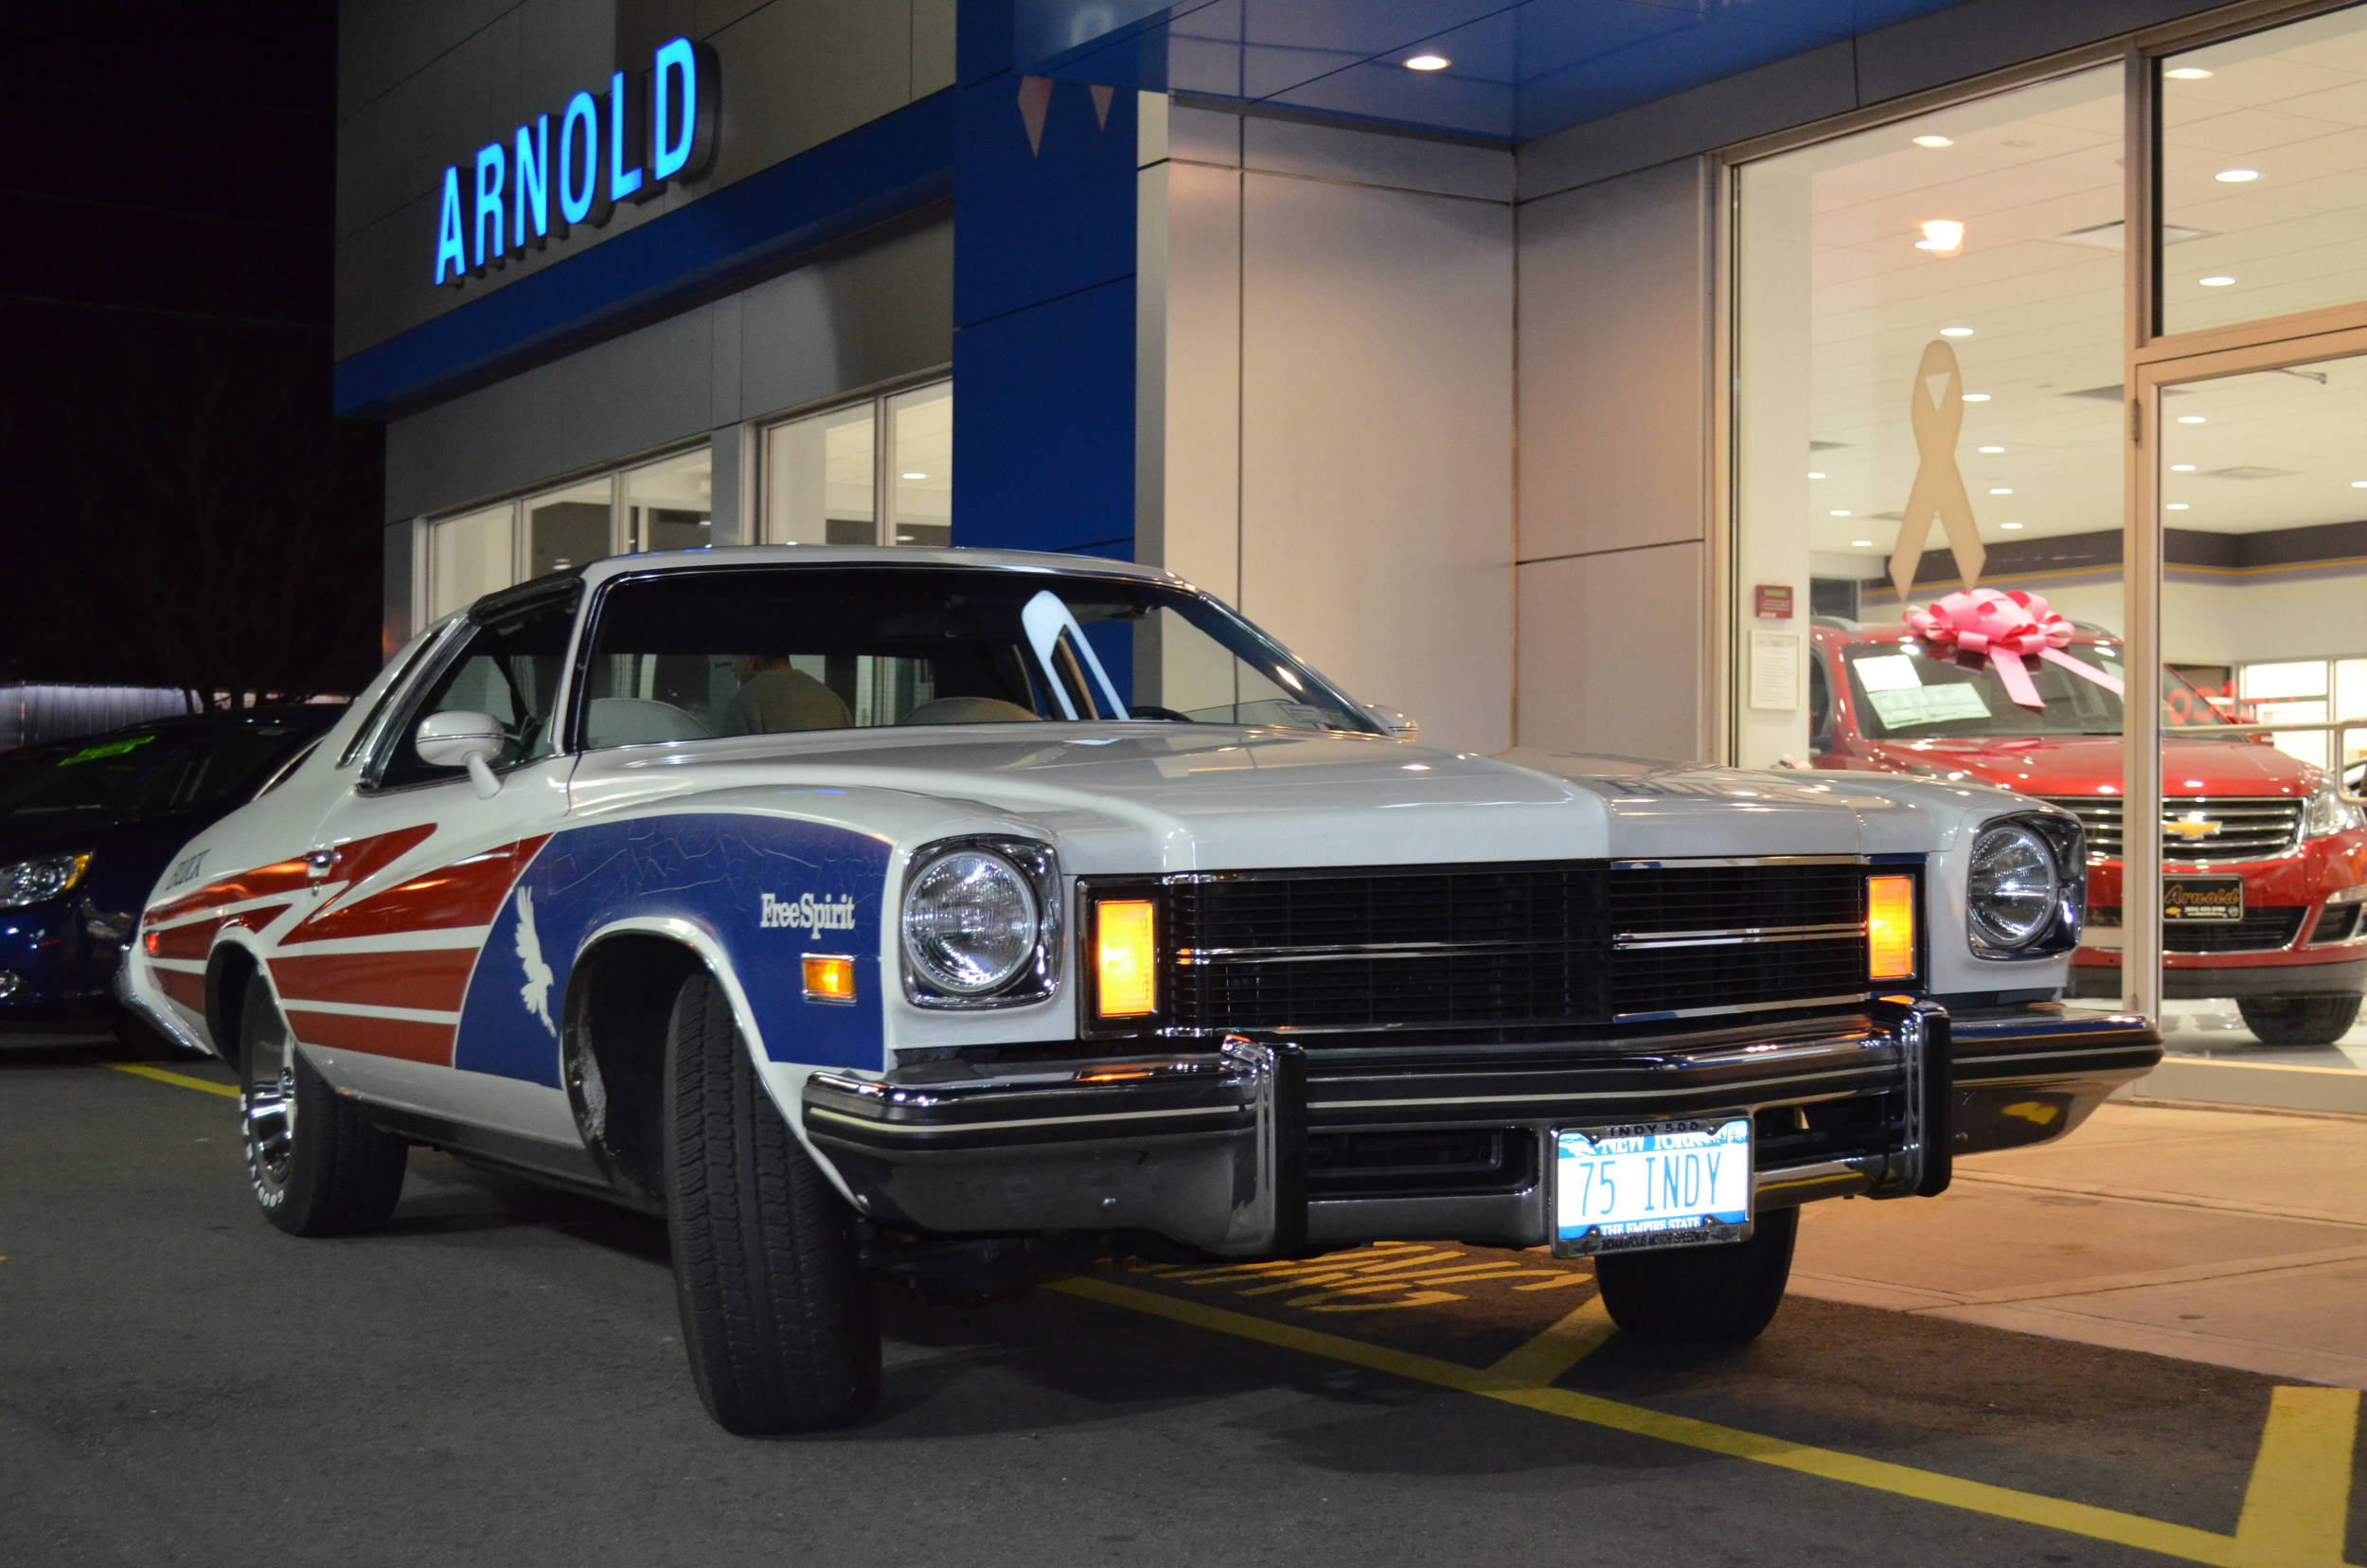 1975 INDY pace car